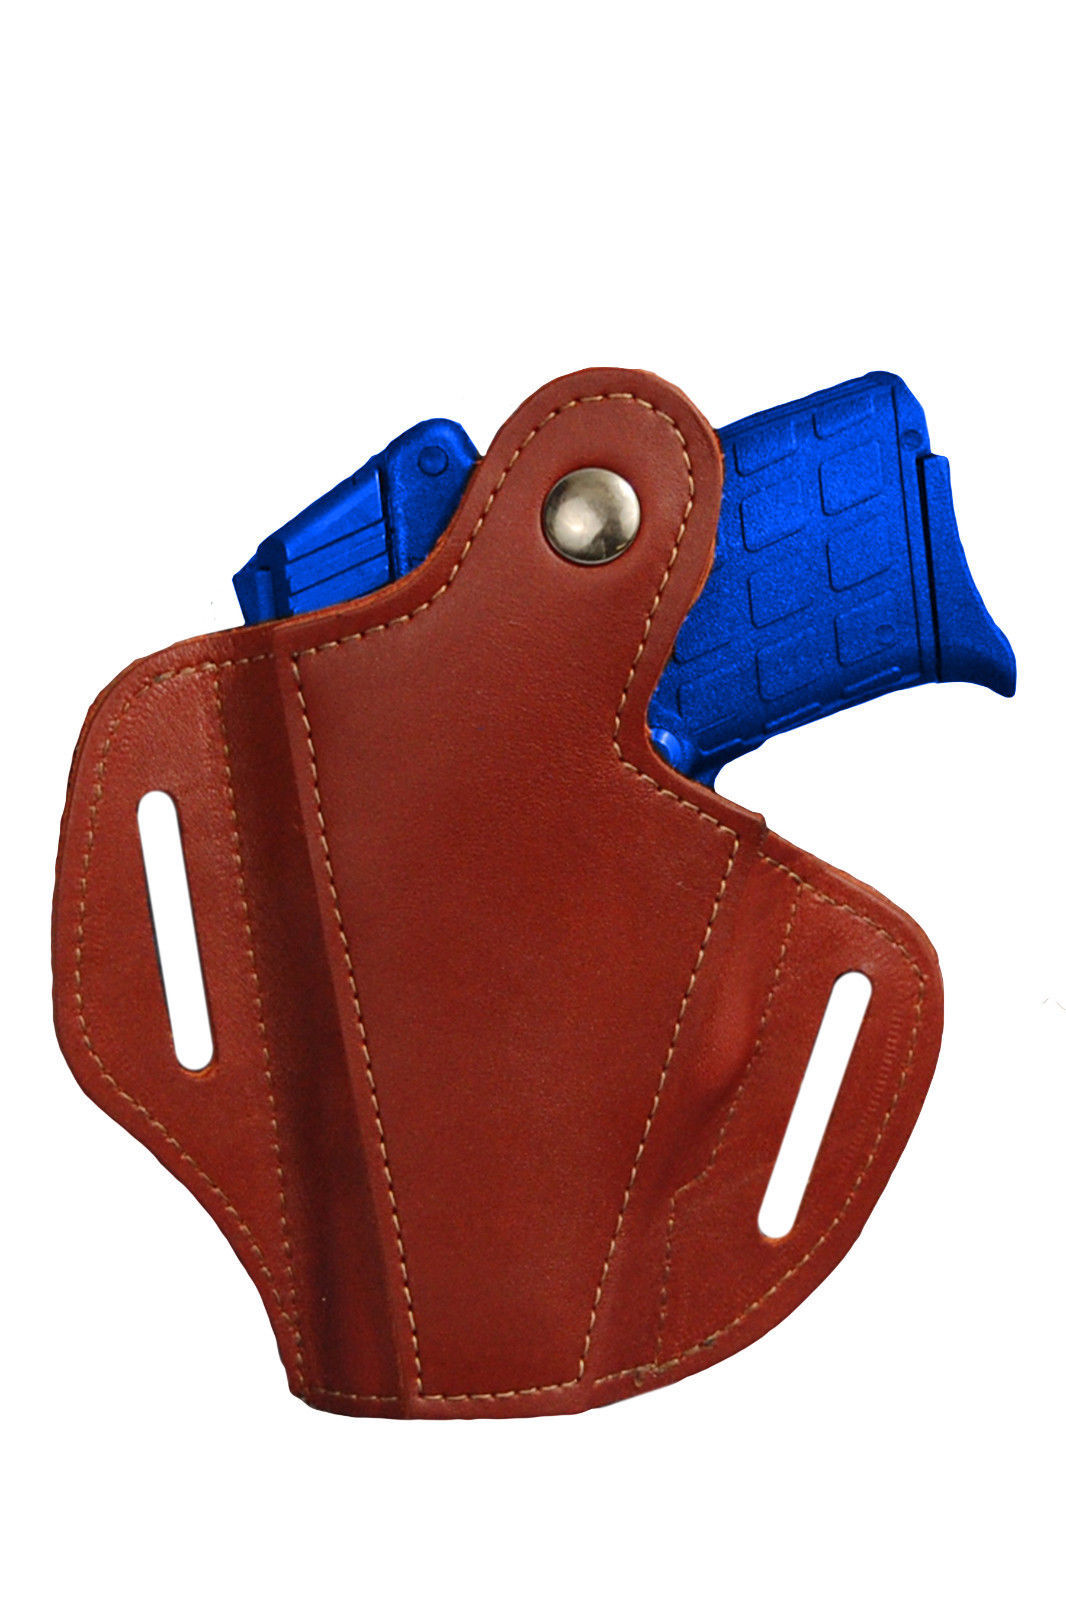 NEW Barsony Burgundy Leather Pancake Holster+Dbl Mag Pouch Beretta Comp 9mm40